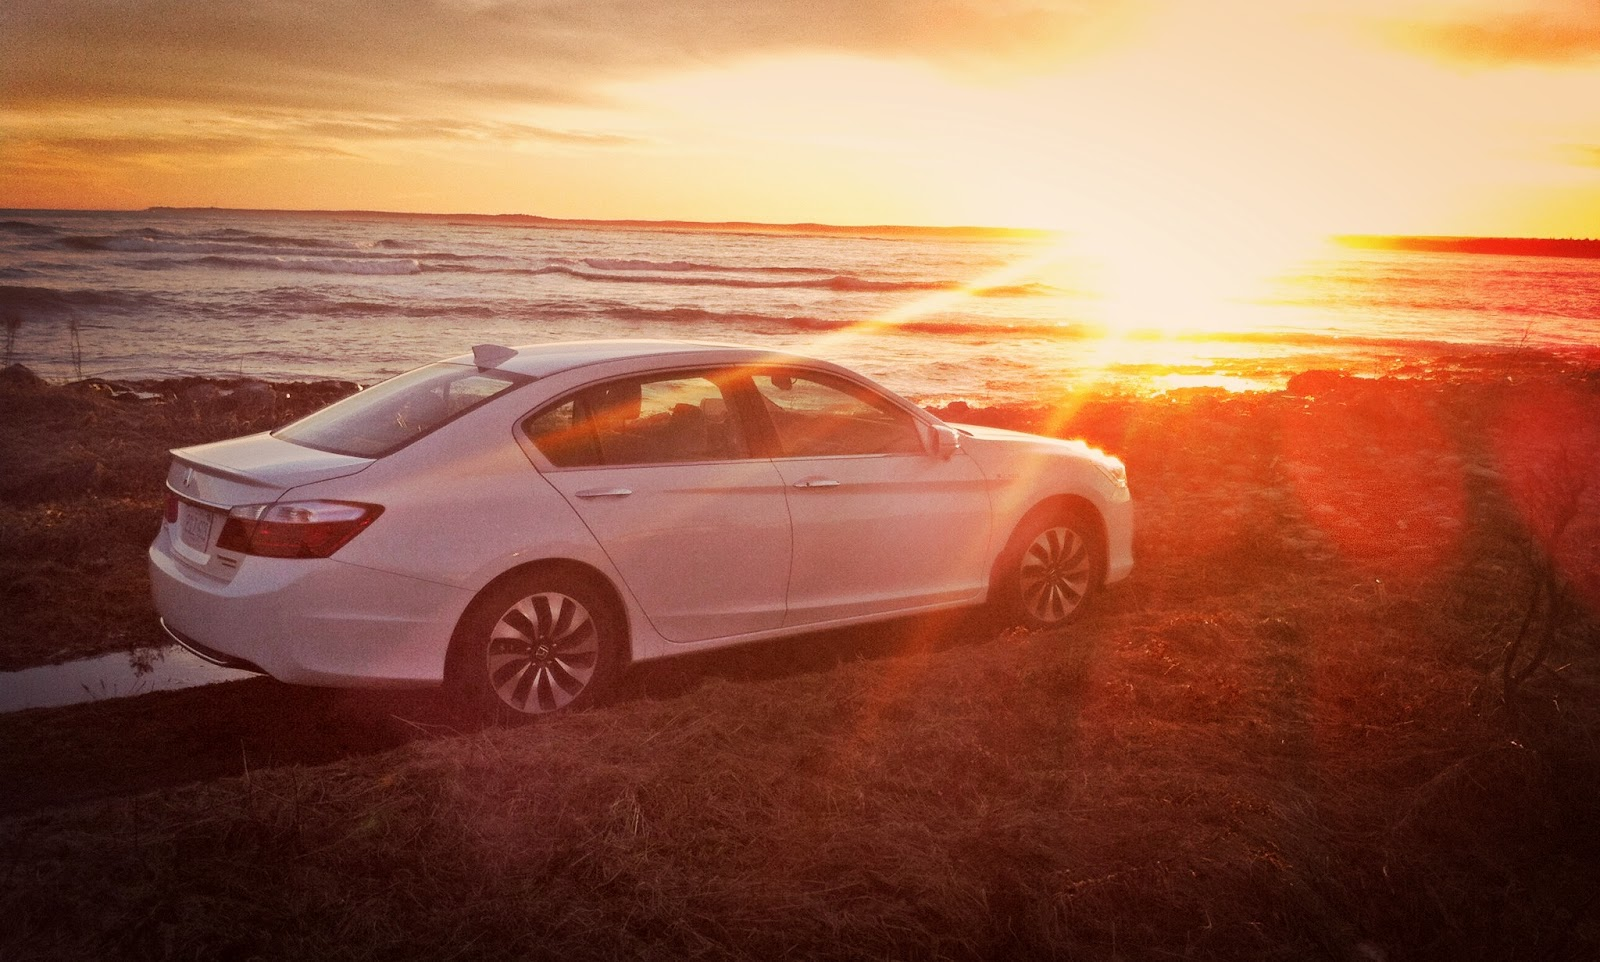 2014 Honda Accord Hybrid sunset